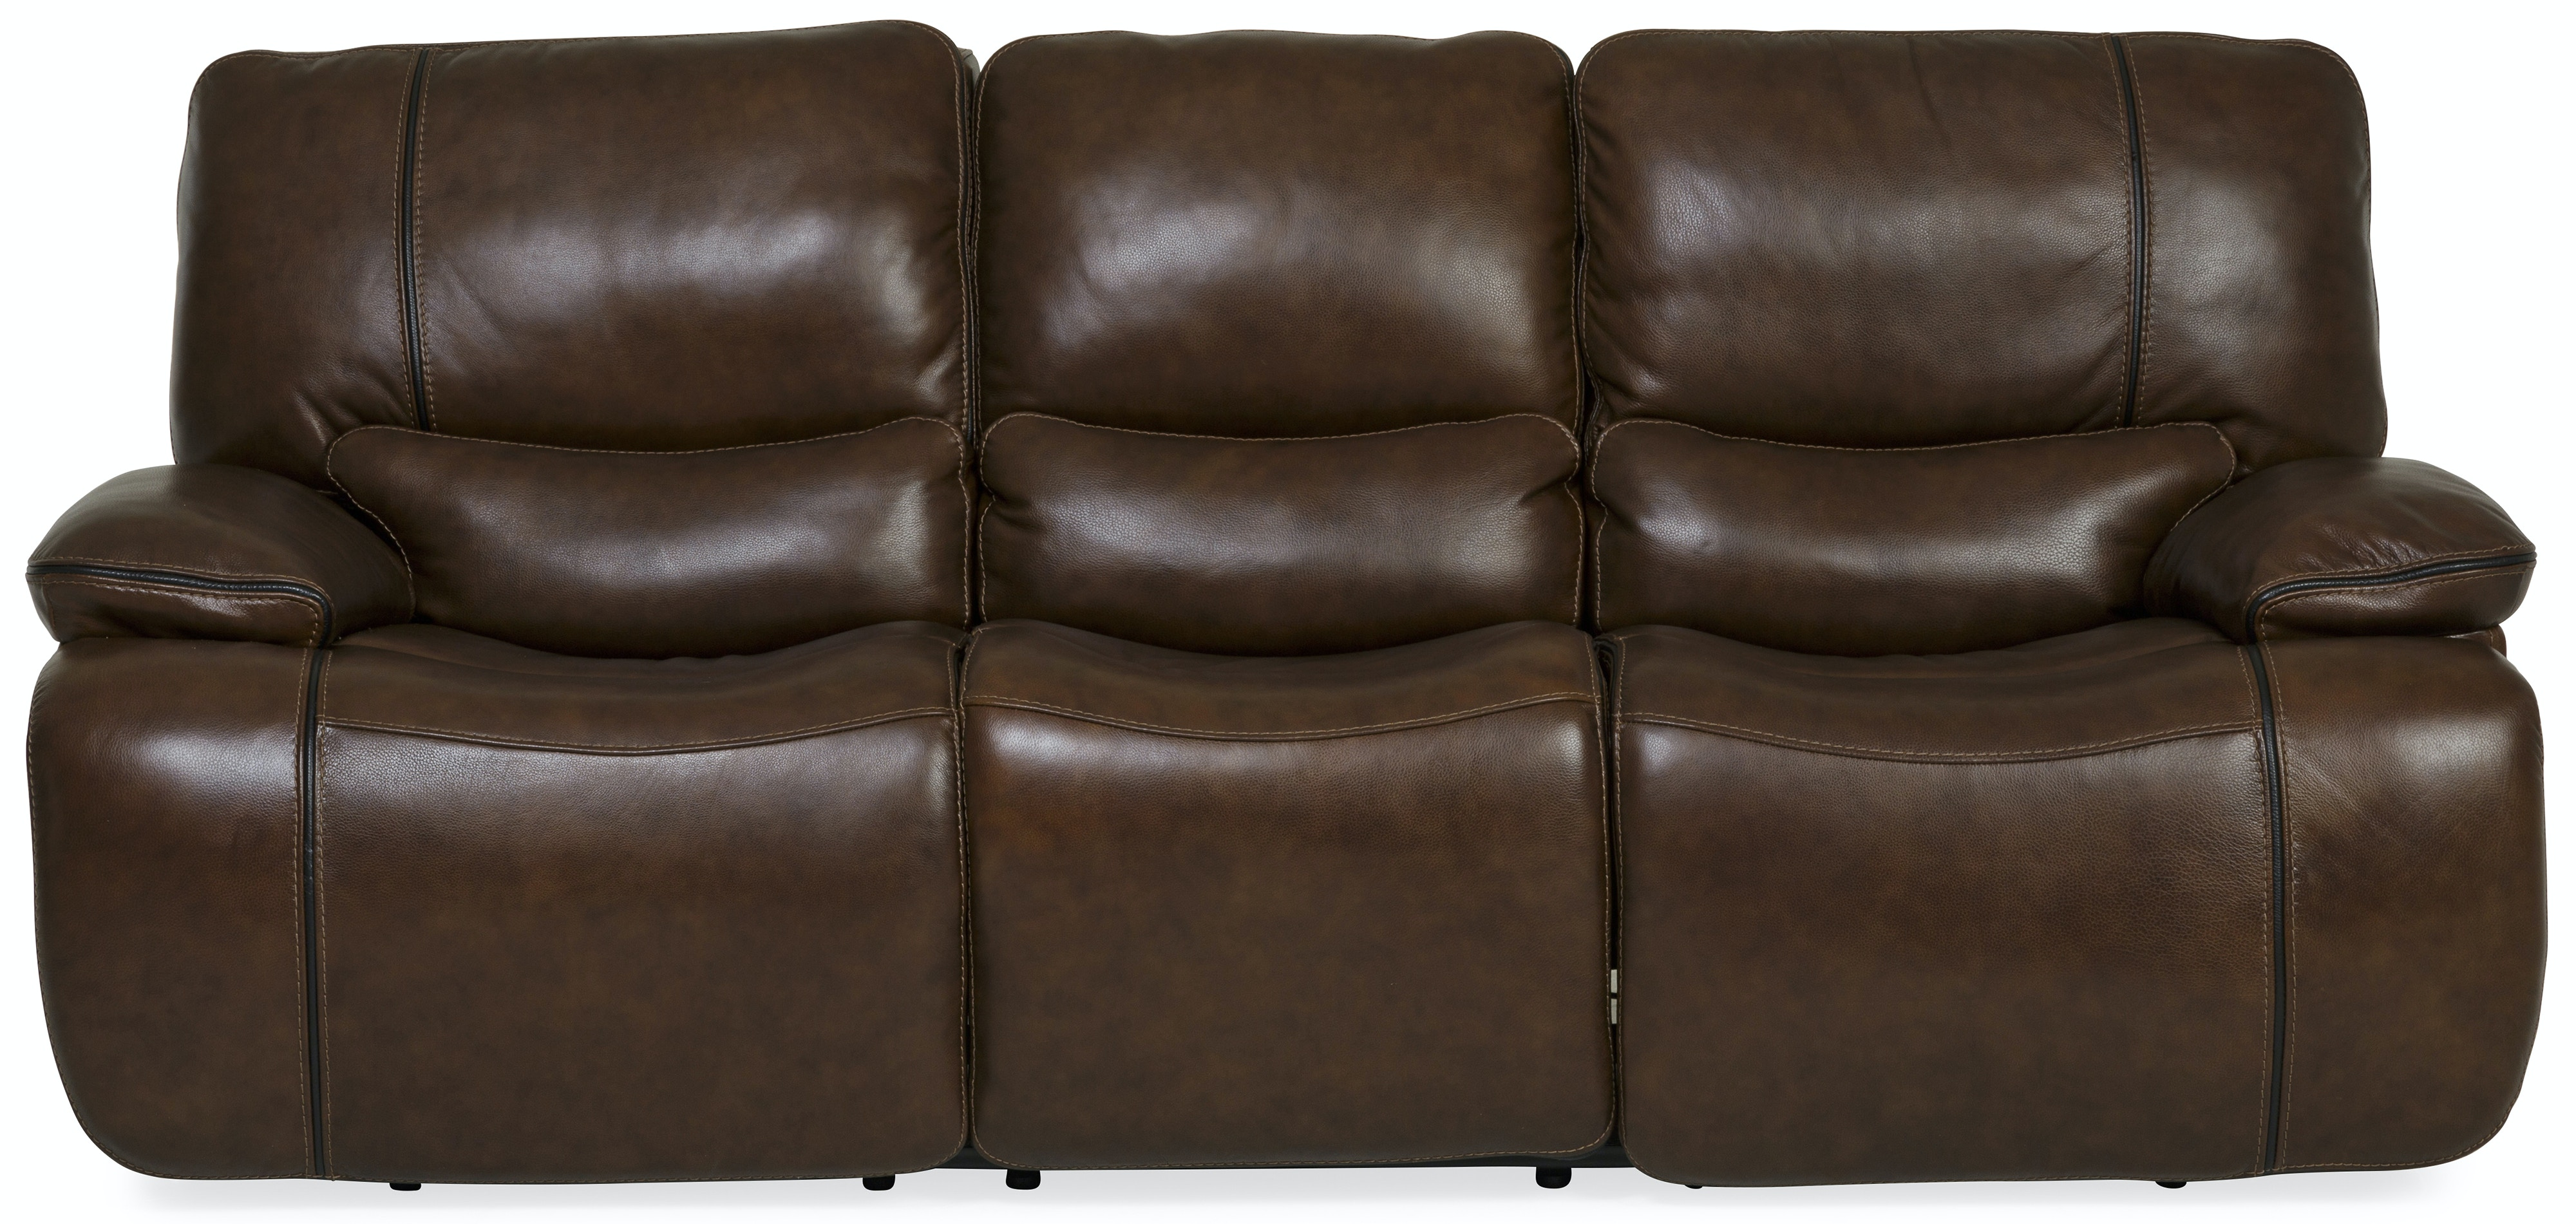 Charmant Boden Bramble Power Reclining Leather Sofa ST:480411